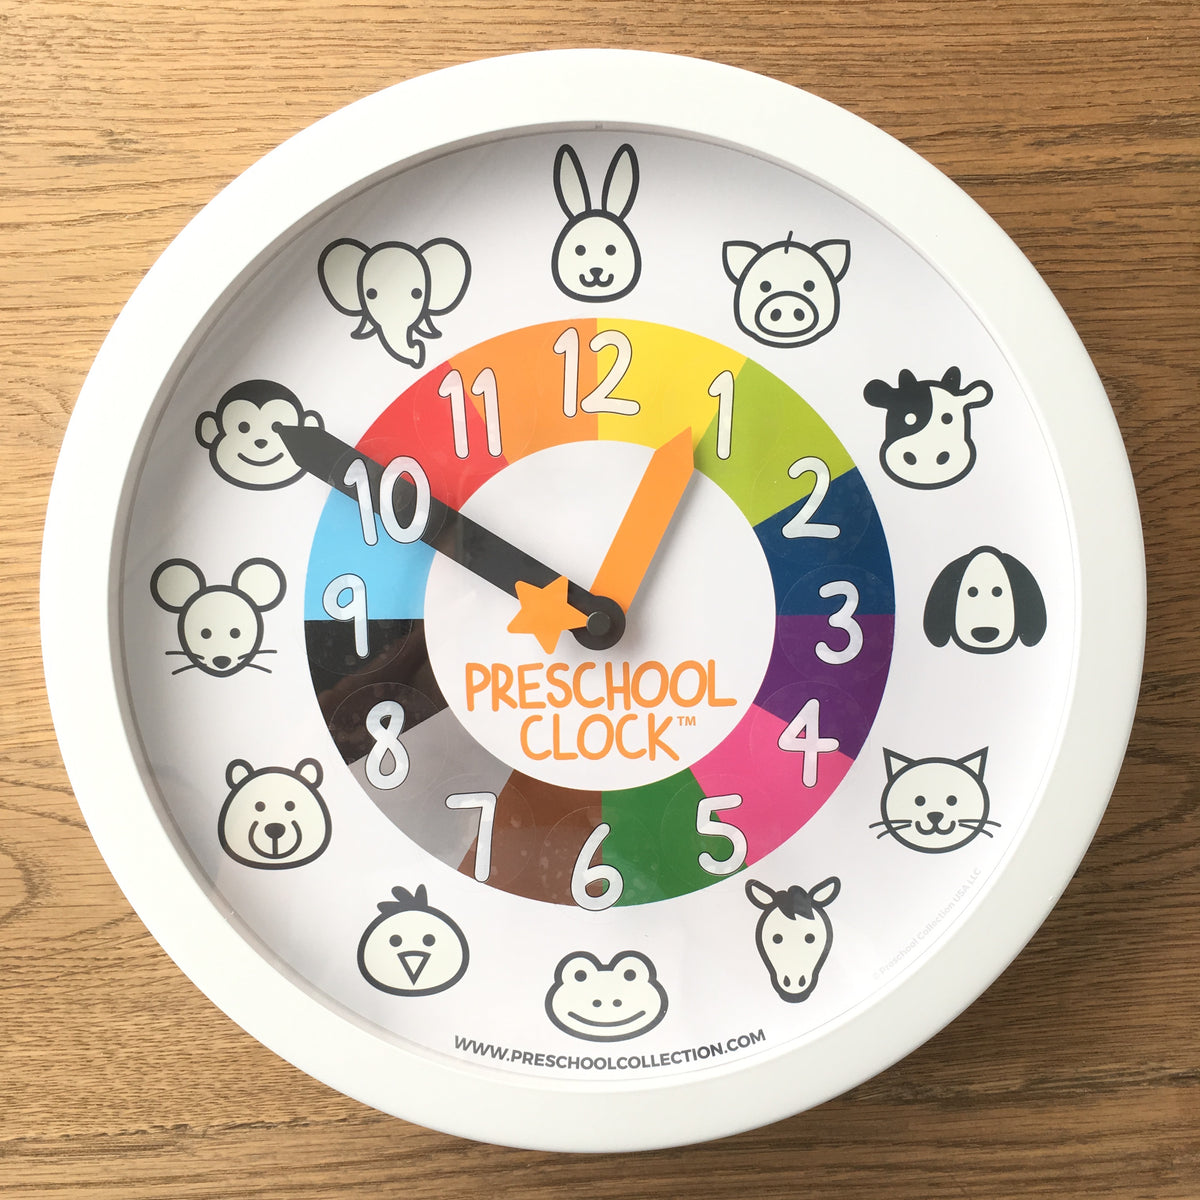 Hour Figures Stickers - Time Learning Clock - Preschool Clock - Preschool Collection